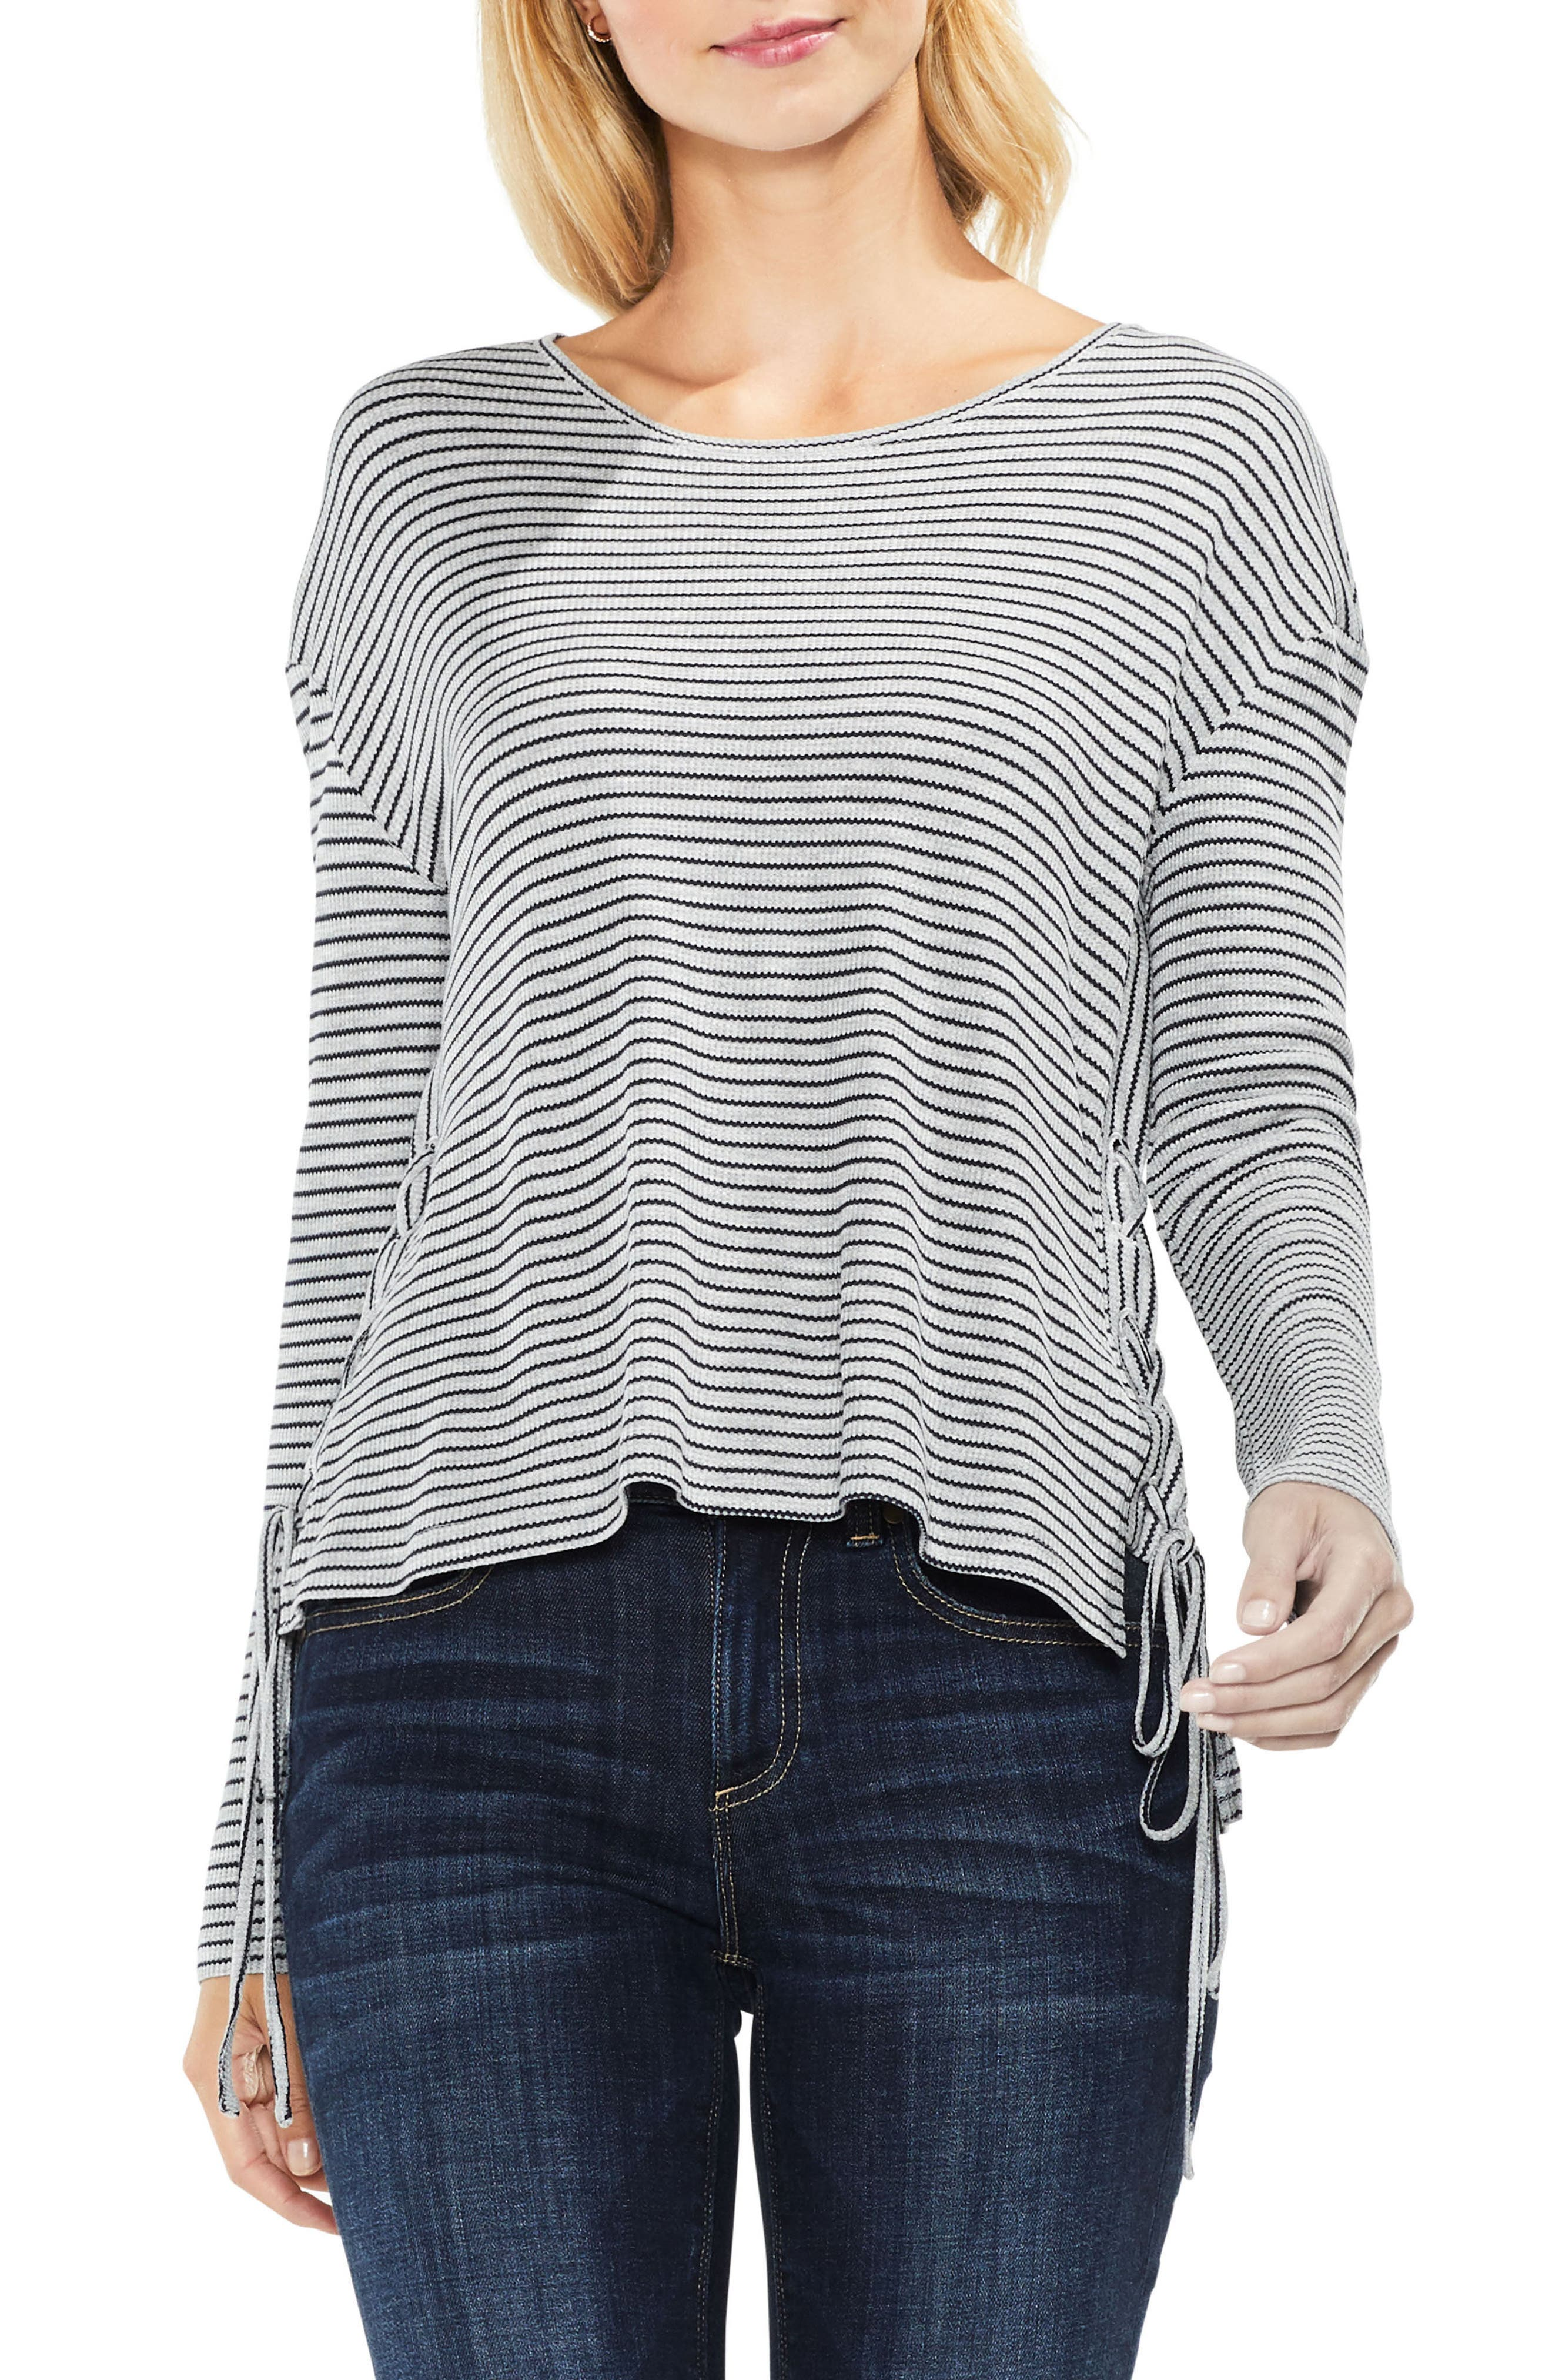 Main Image - Two by Vince Camuto Lace-Up Side Stripe Top